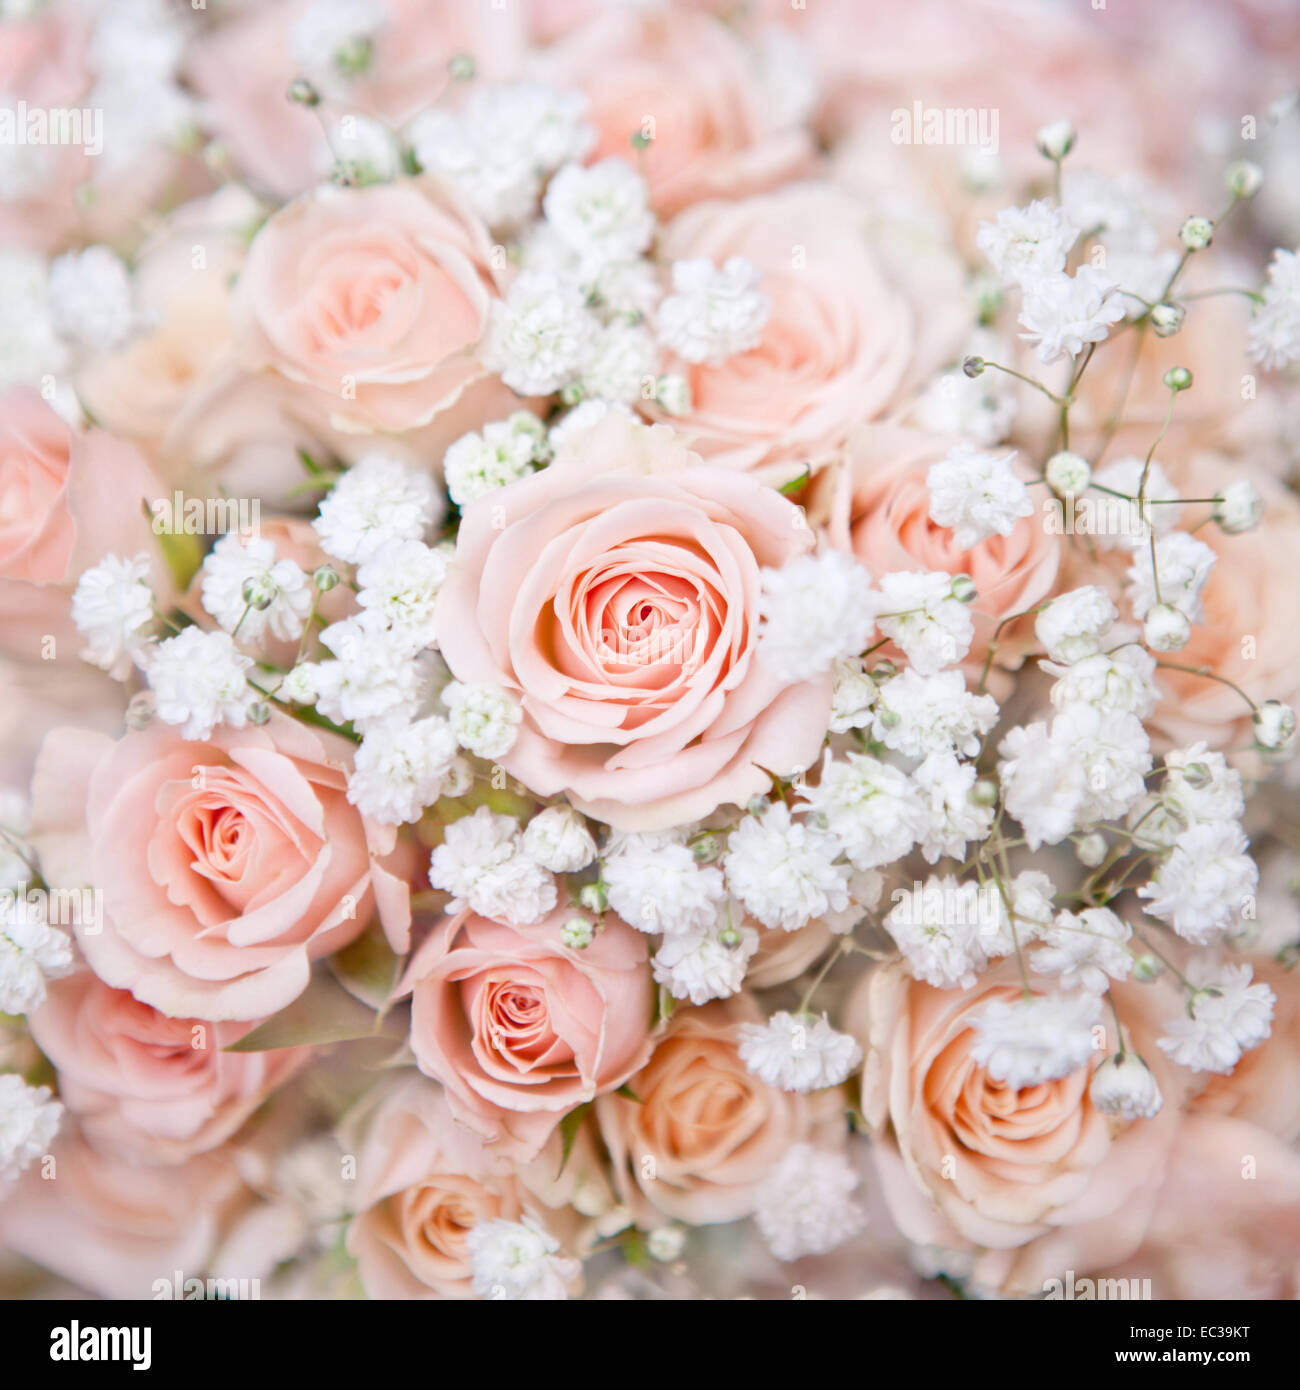 Soft focus pink rose flower stock photos soft focus pink rose soft pink wedding bouquet with rose bush and little white flower stock image mightylinksfo